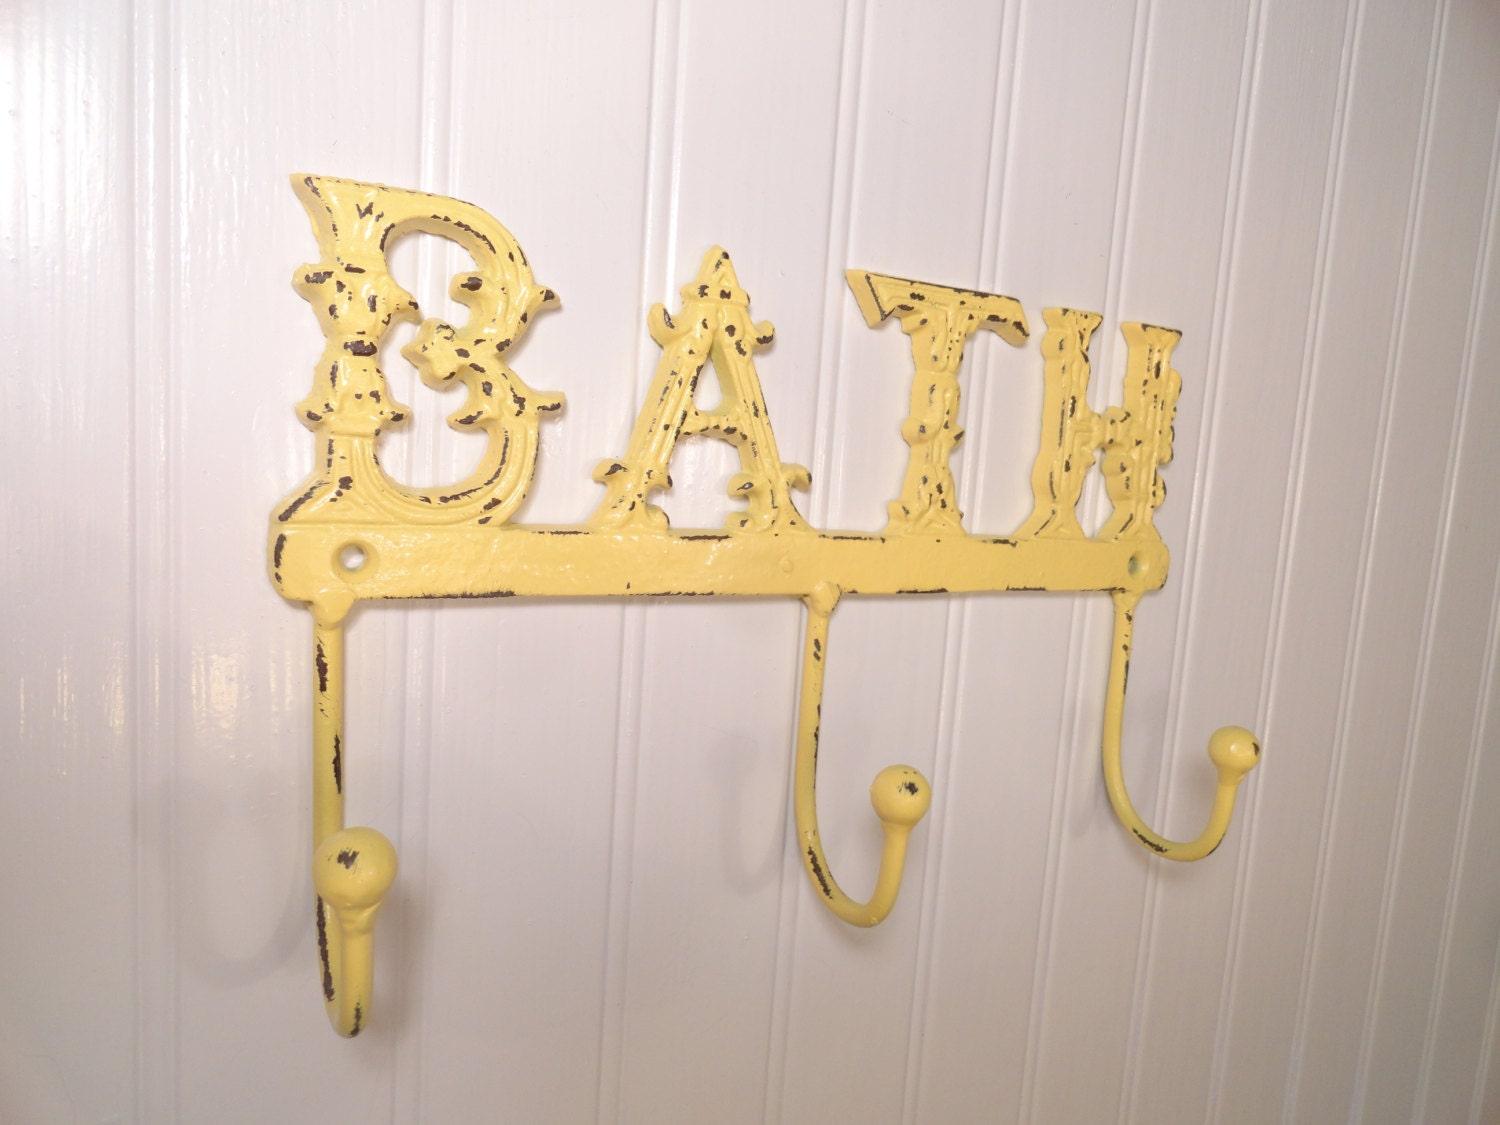 Yellow bathroom decor cast iron bathroom towel hook towel rack for Bathroom accessories yellow